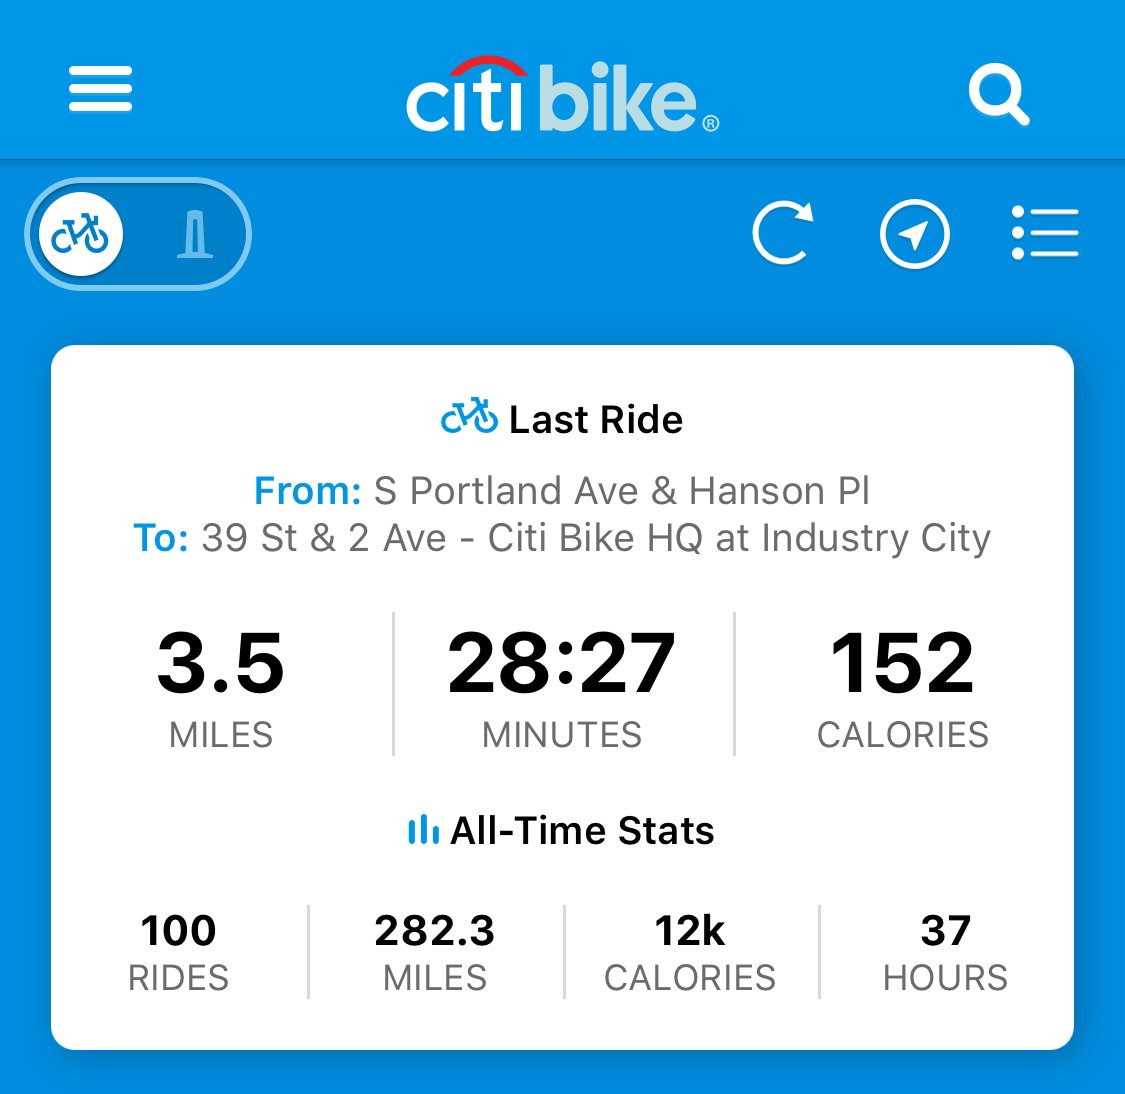 Decided to try @CitiBikeNYC for commuting in October and today I had my 100th ride